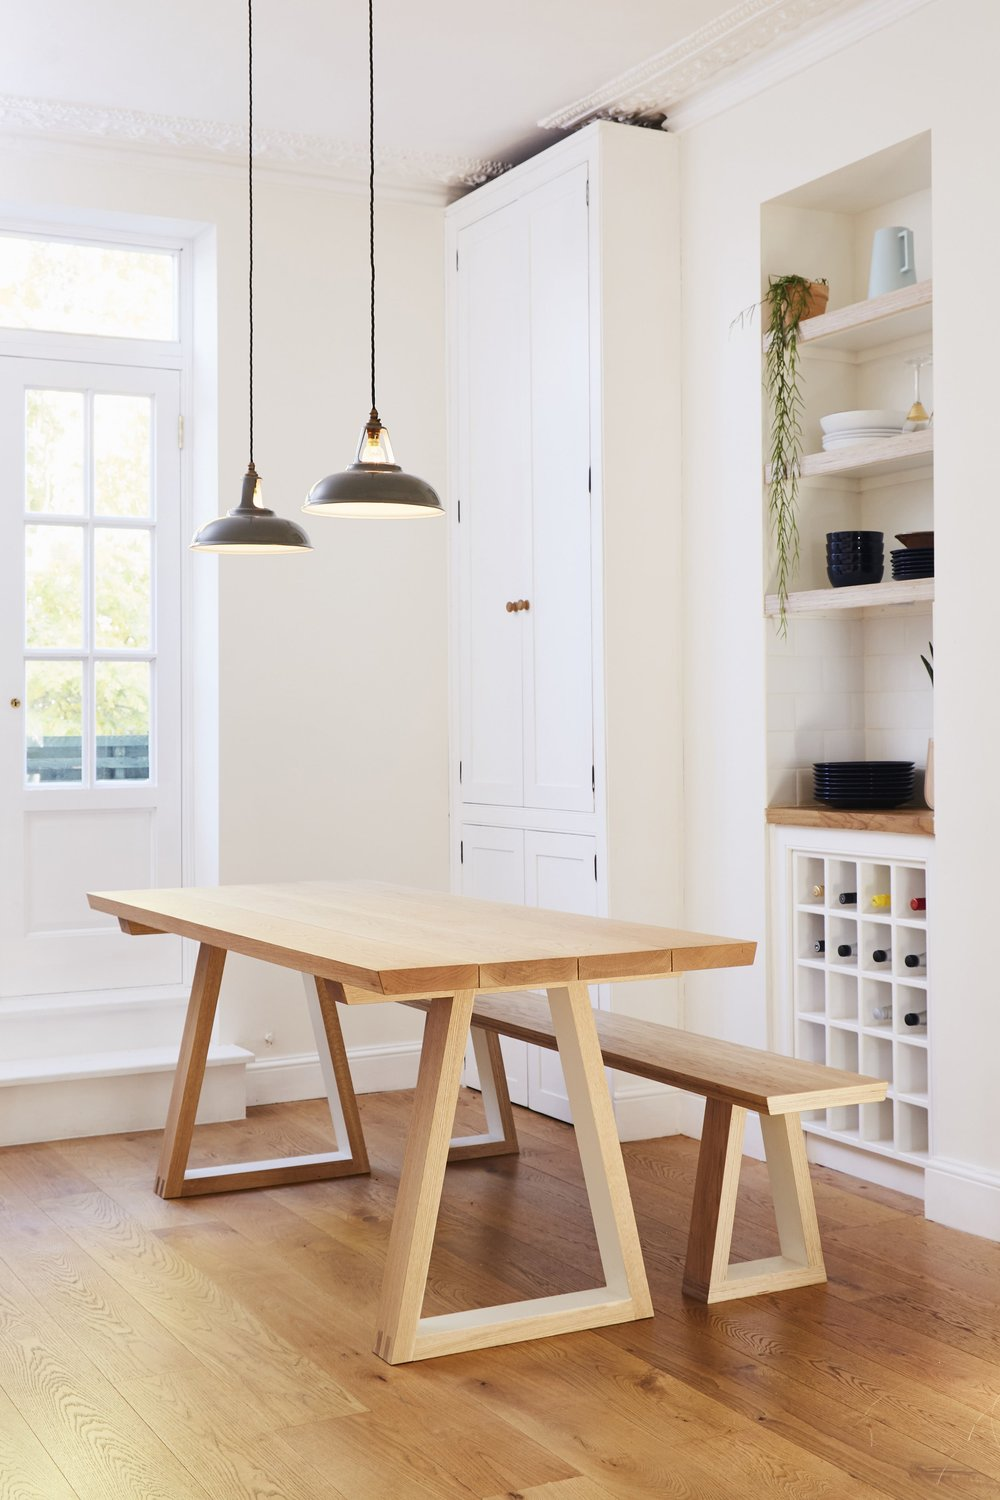 Cass's graphic solid oak and plywood bench offsets her majestic yet homely kitchen table.